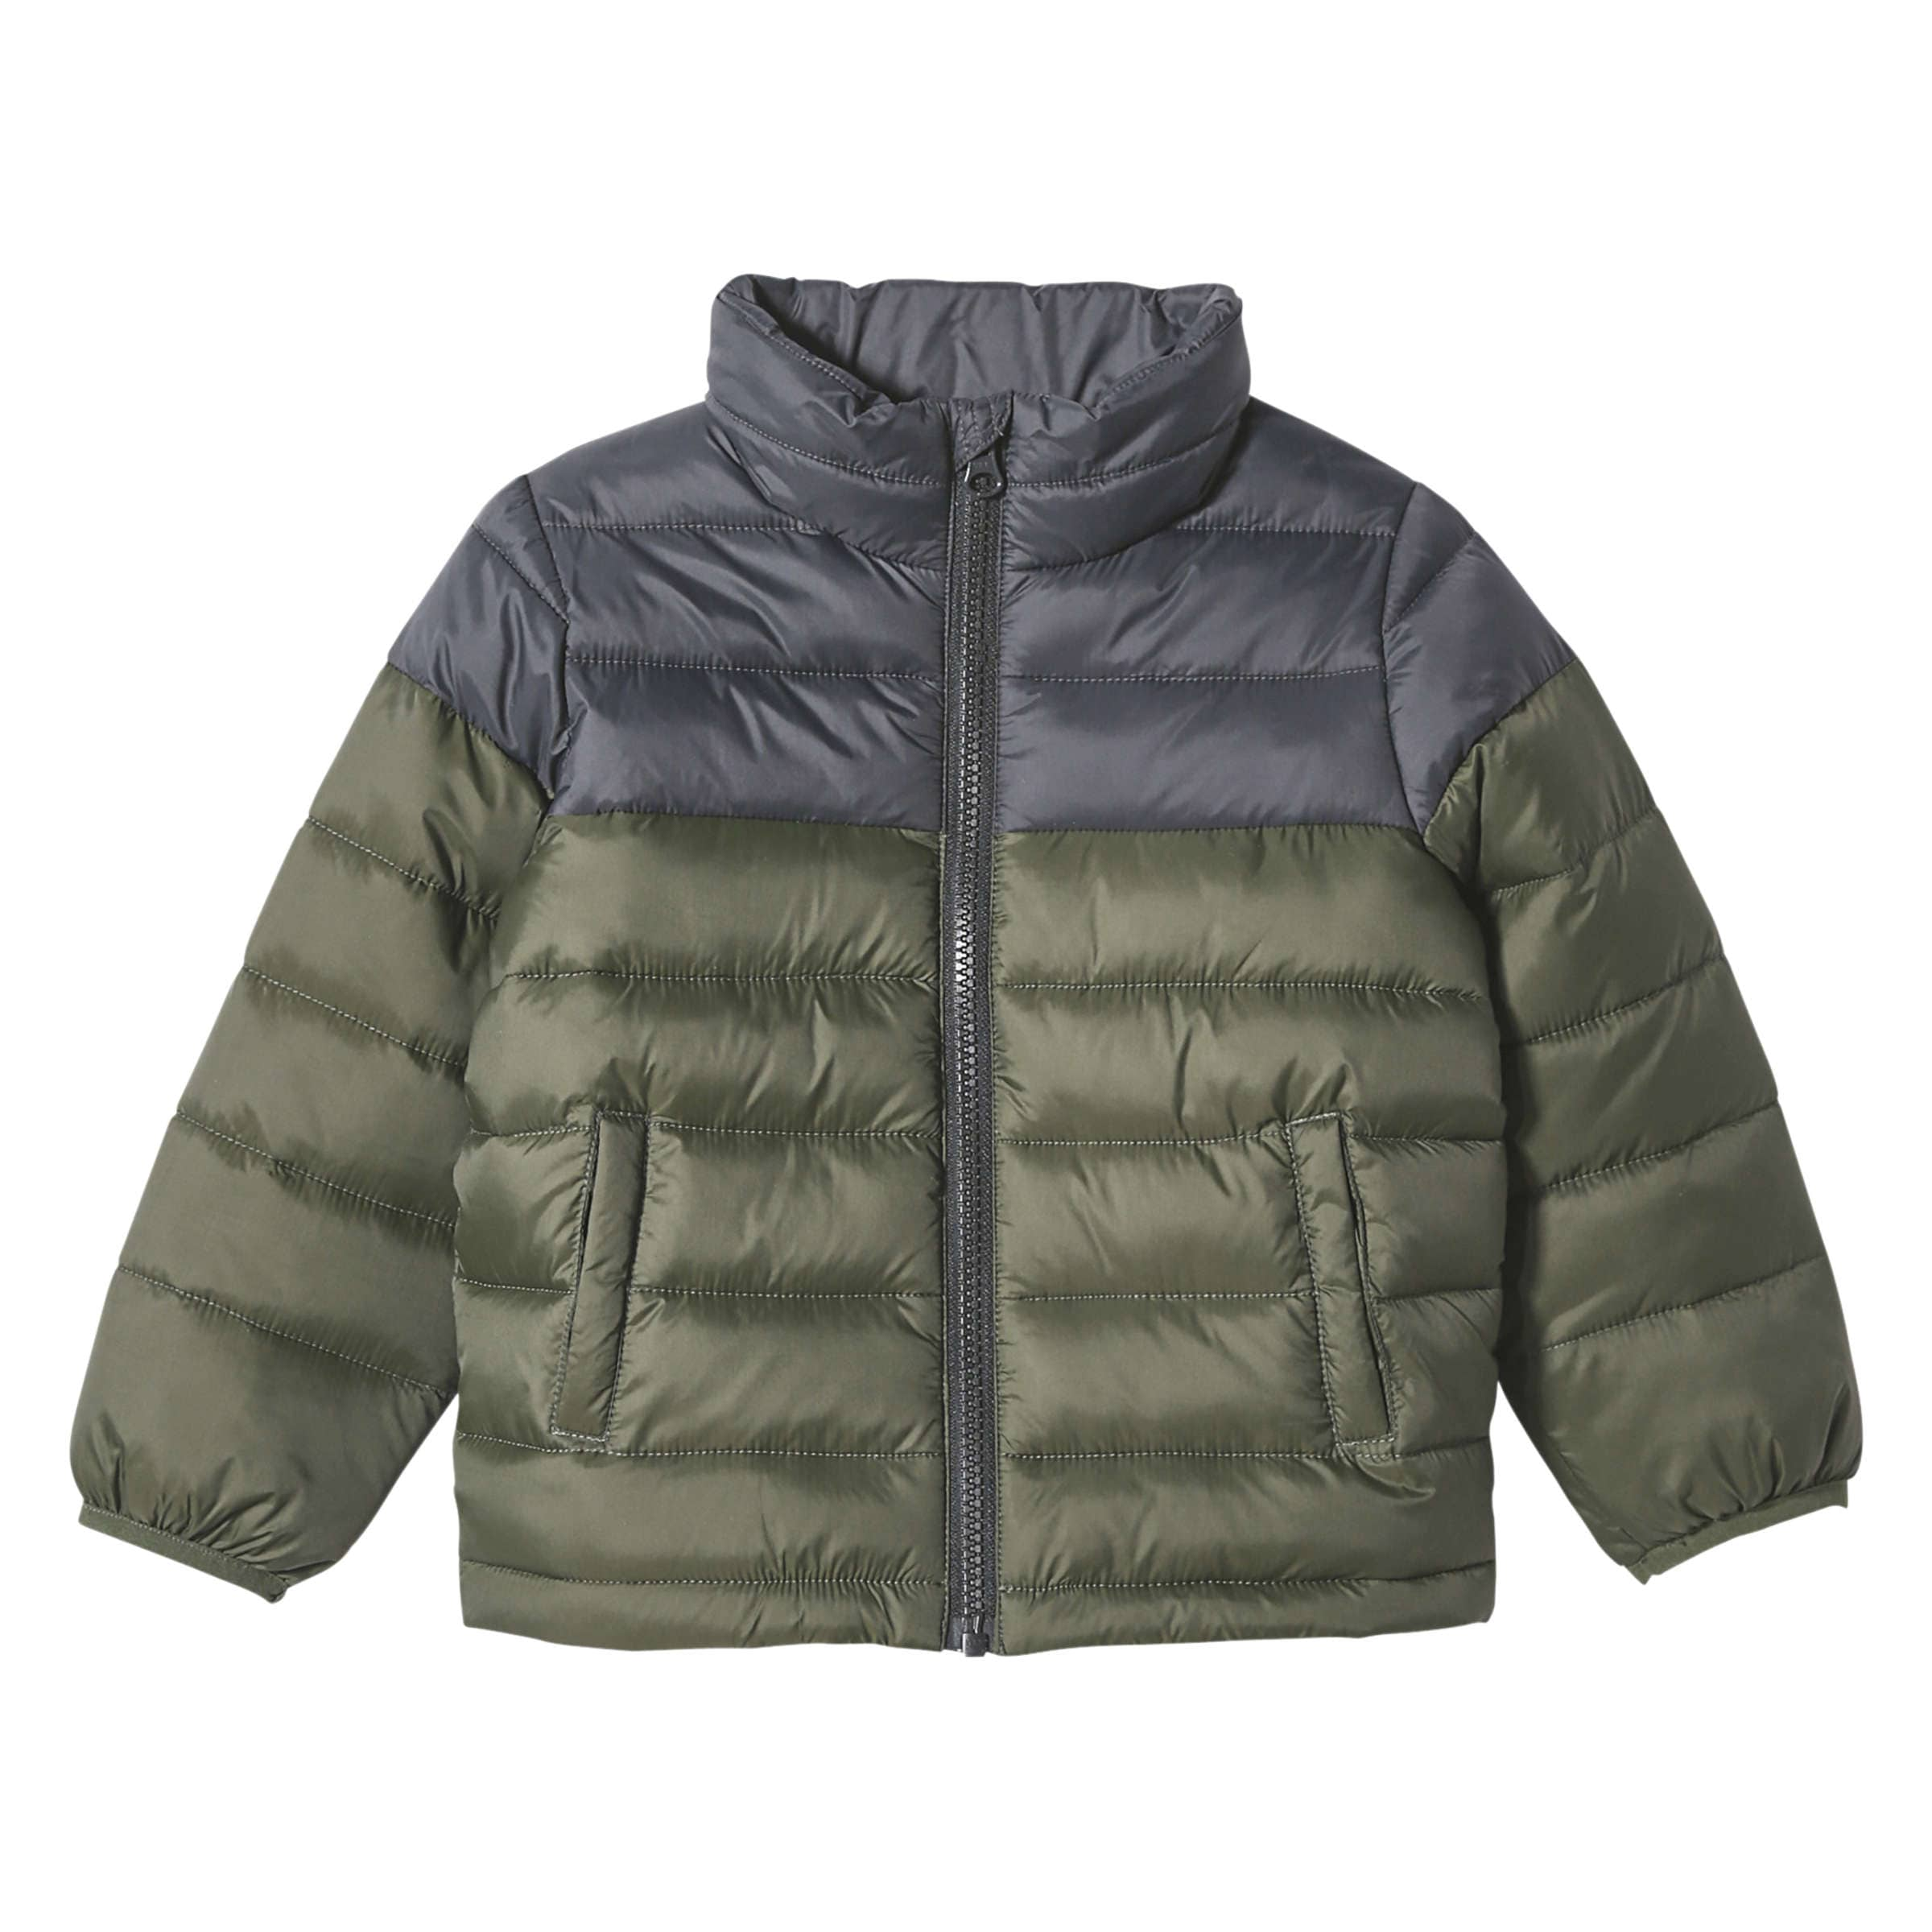 33b959716e Joe Fresh Toddler Boys' Contrast Quilted Jacket